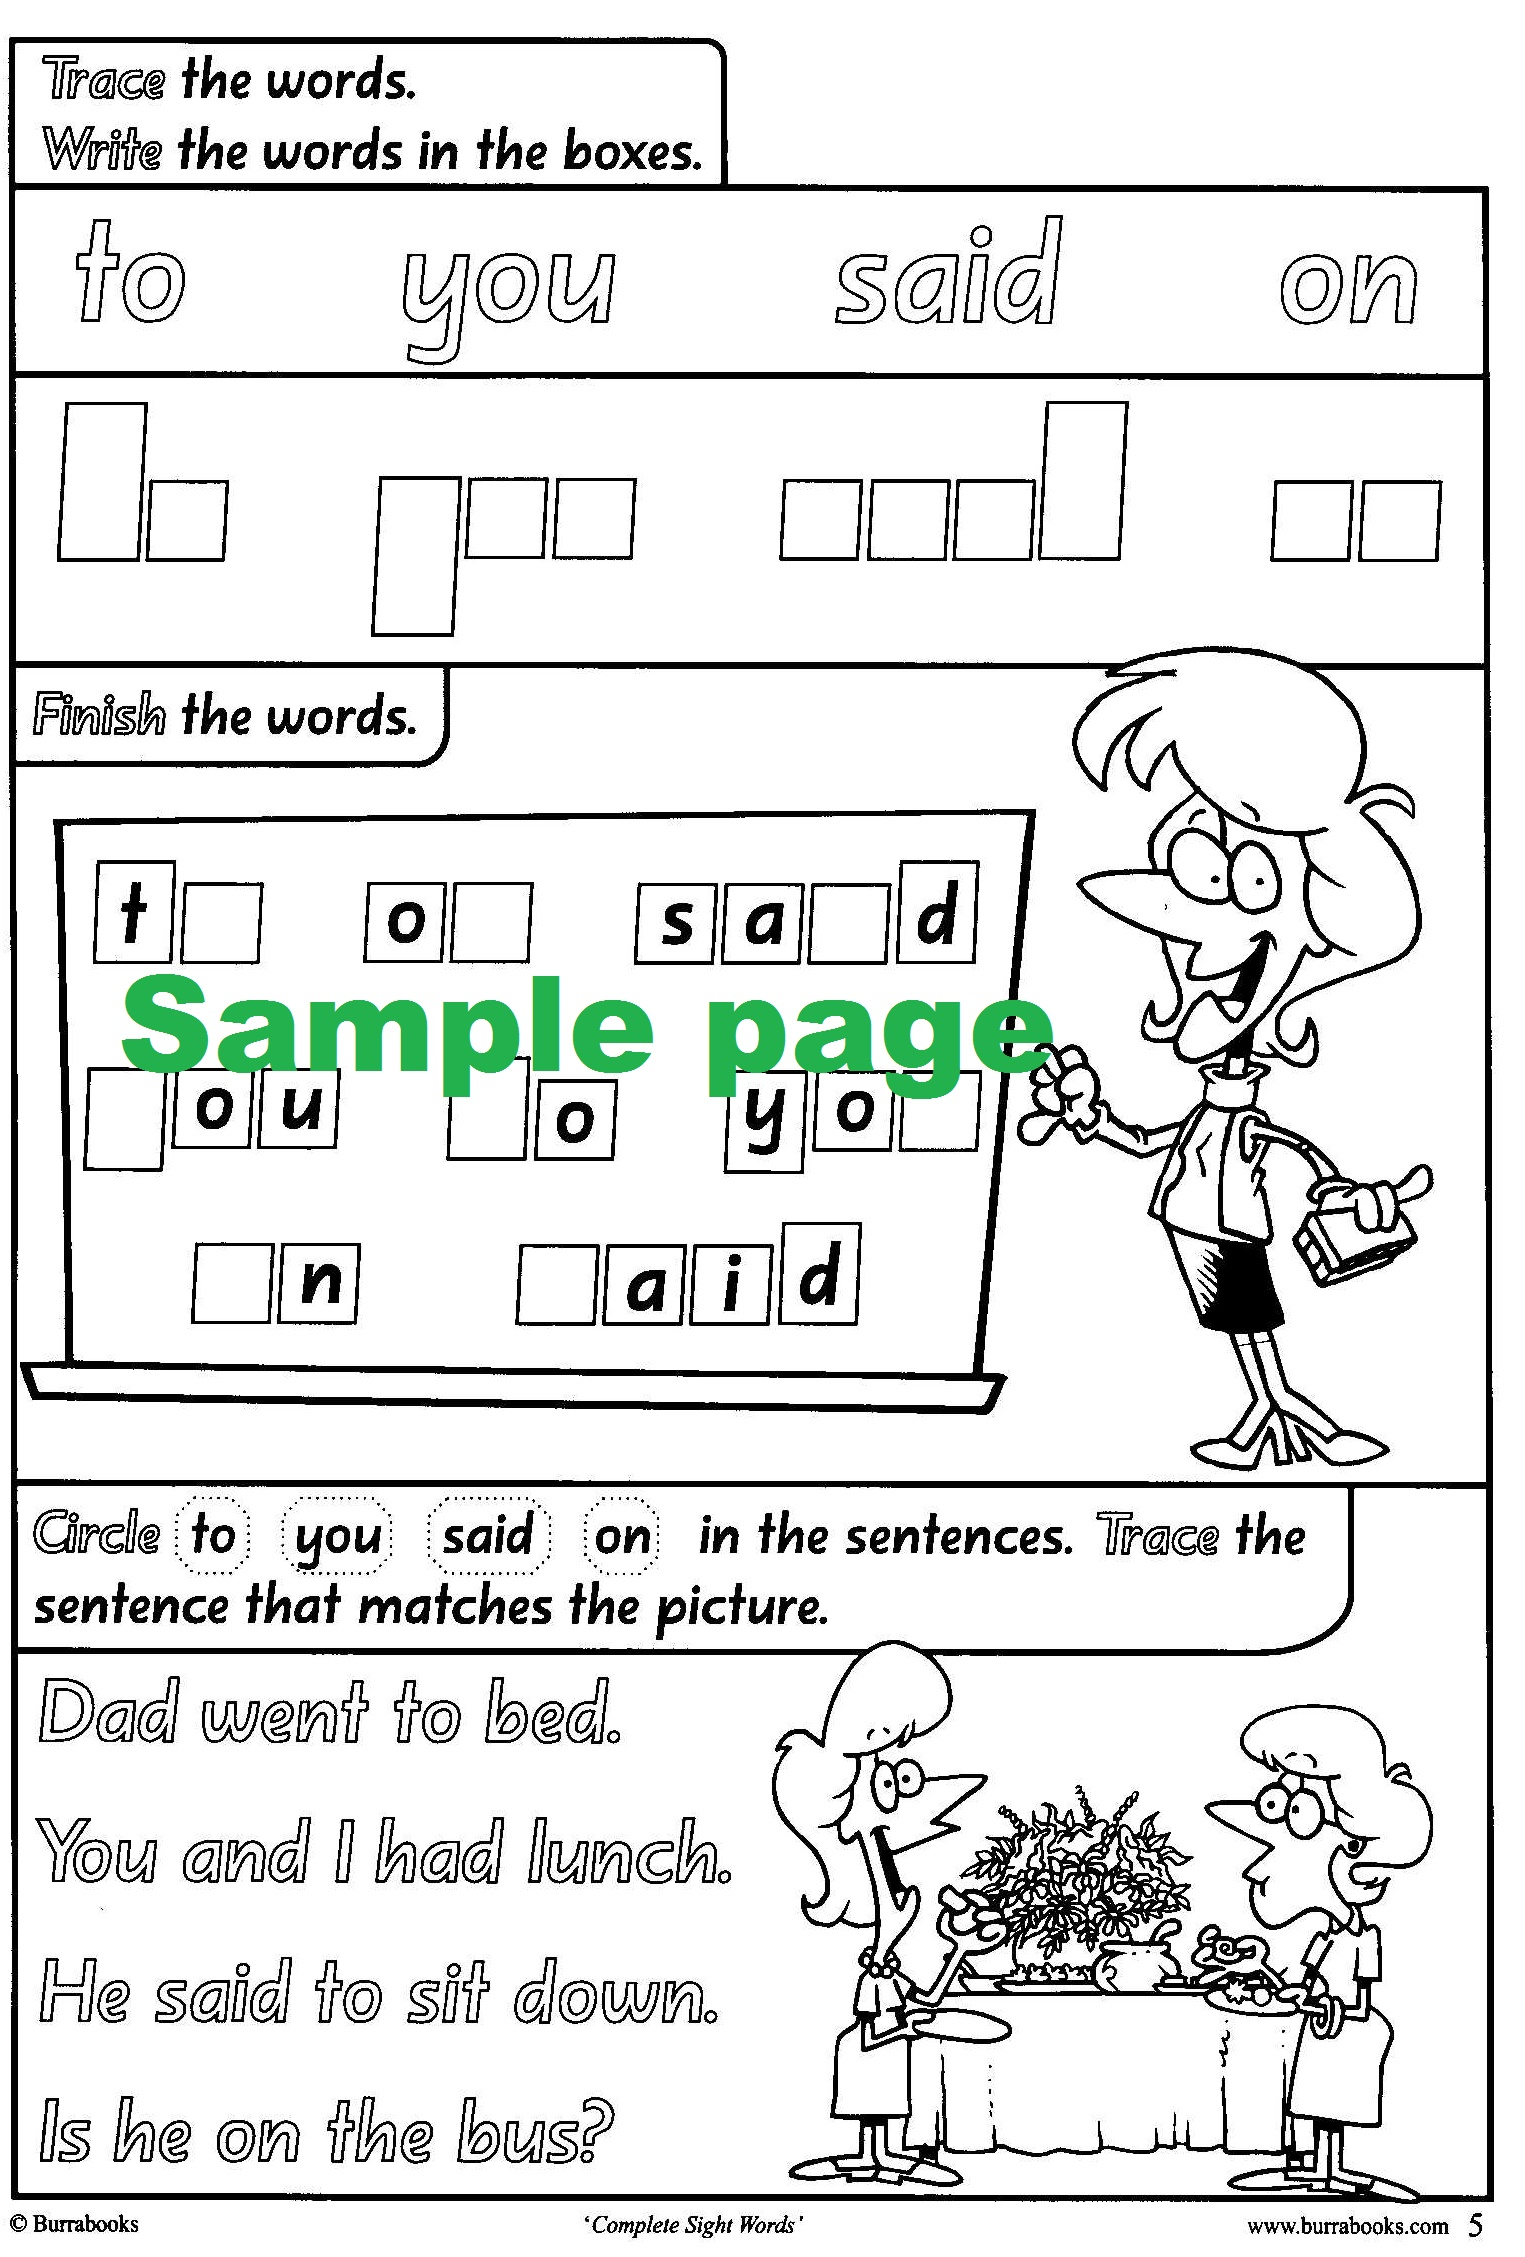 Complete Sight Words-41816